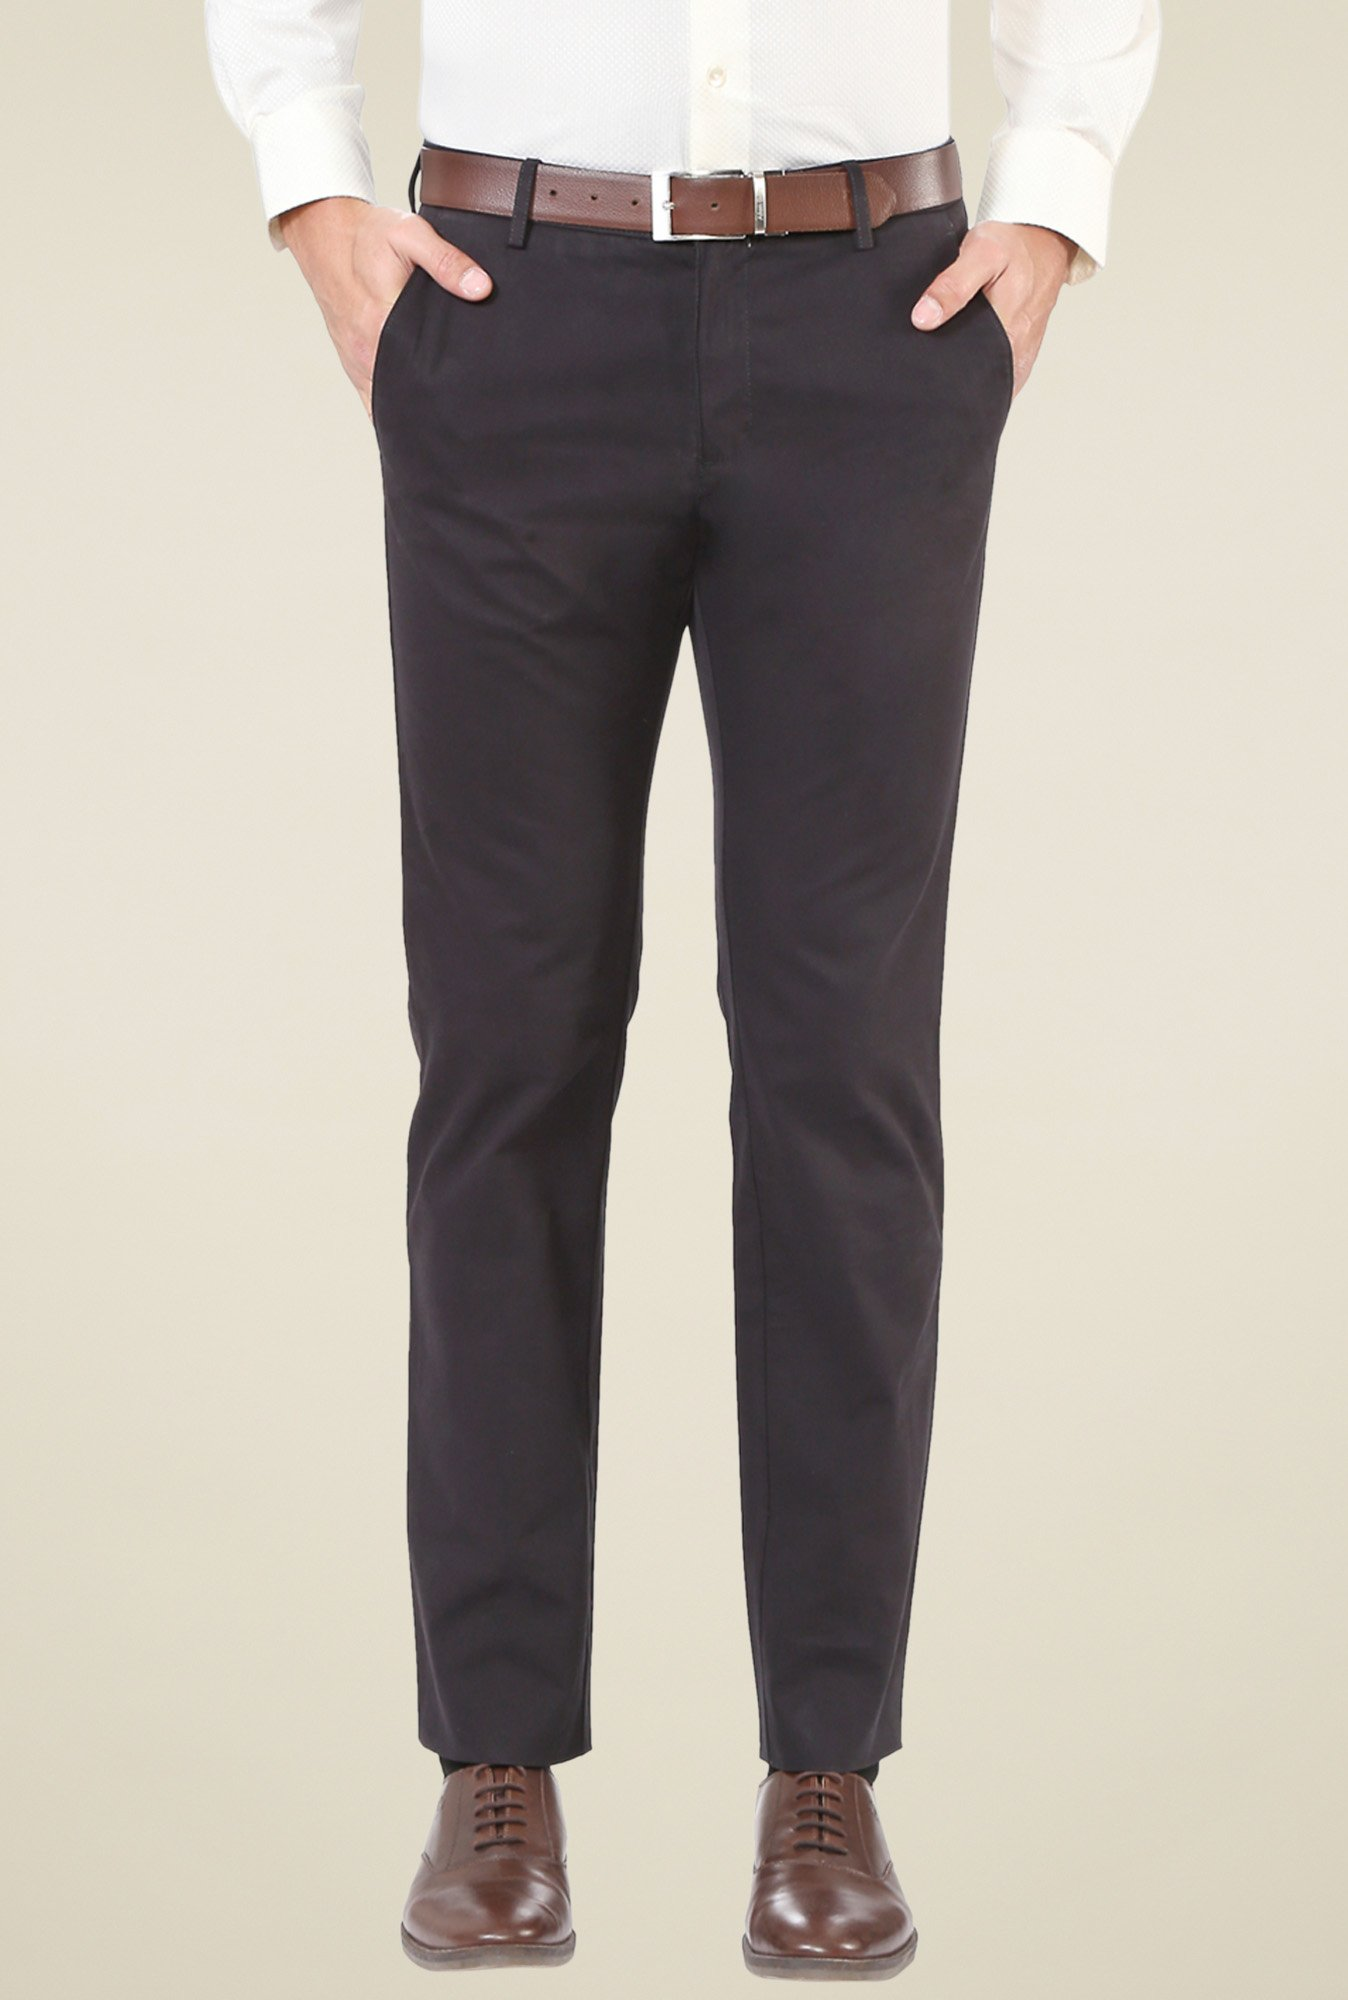 Allen Solly Black Slim Fit Mid Rise Trousers